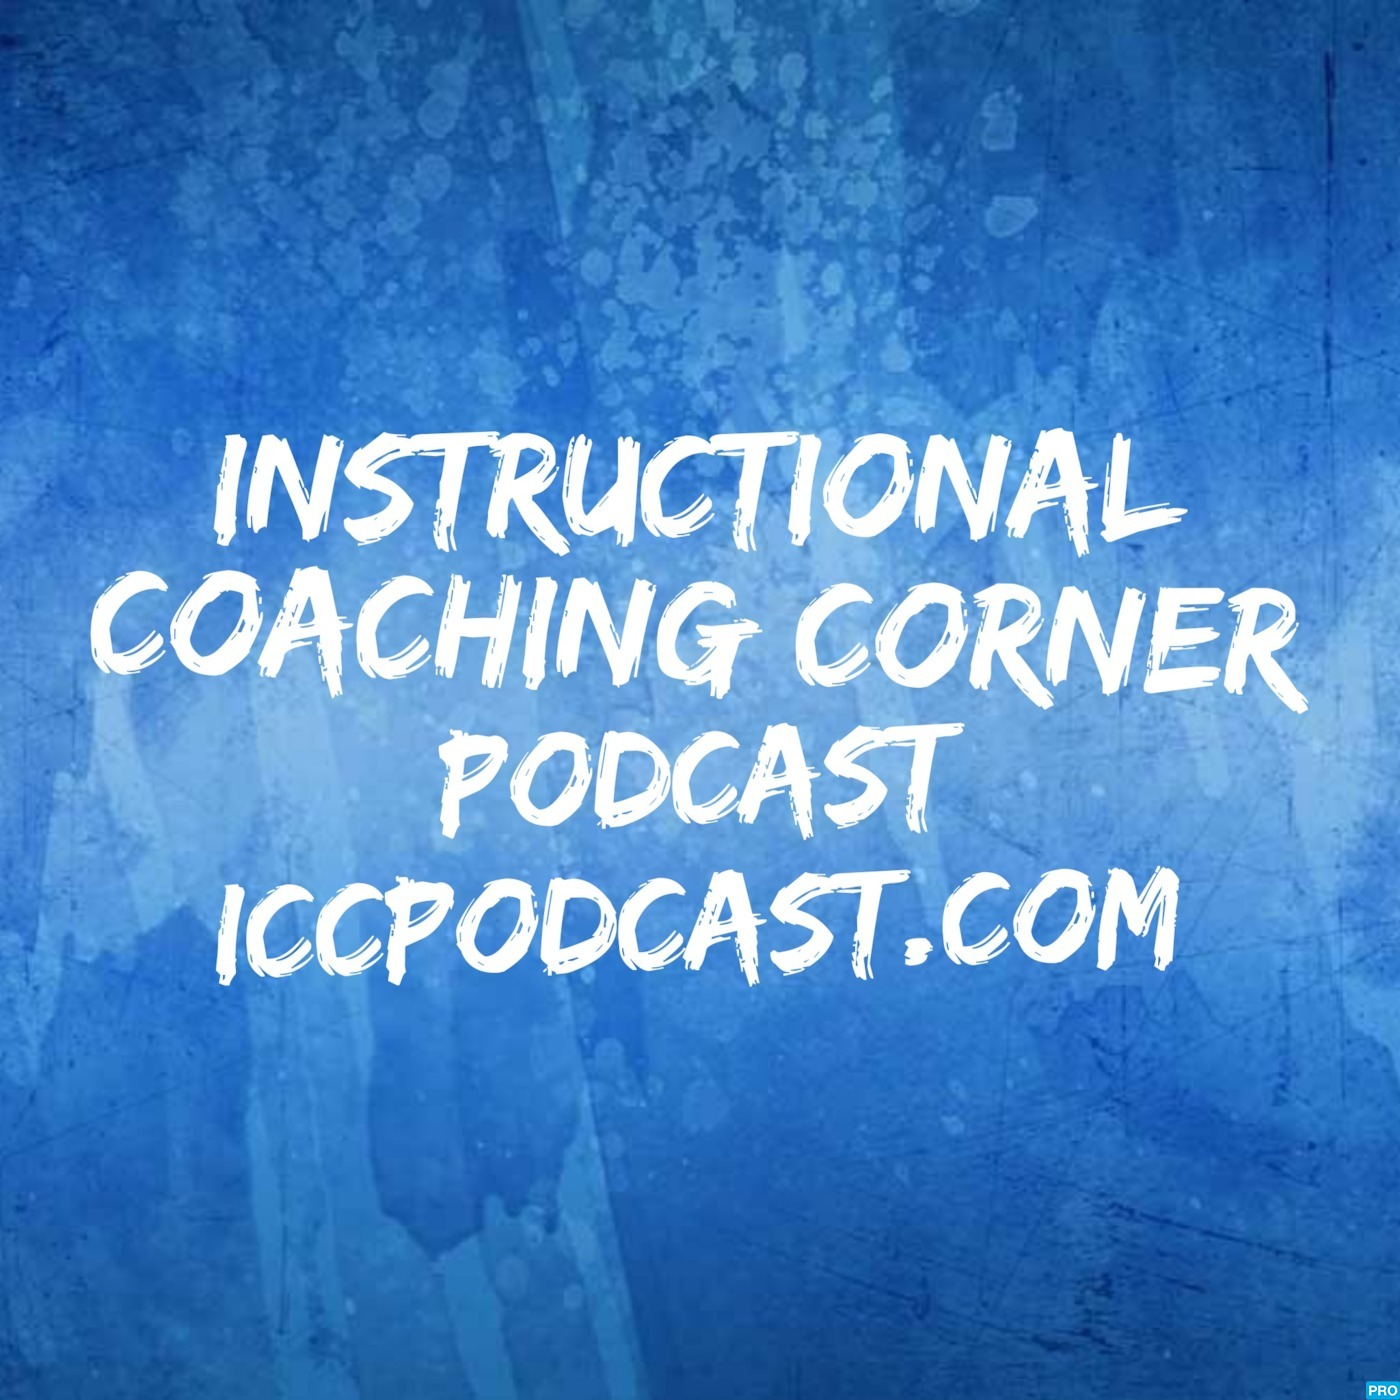 Instructional Coaching Corner